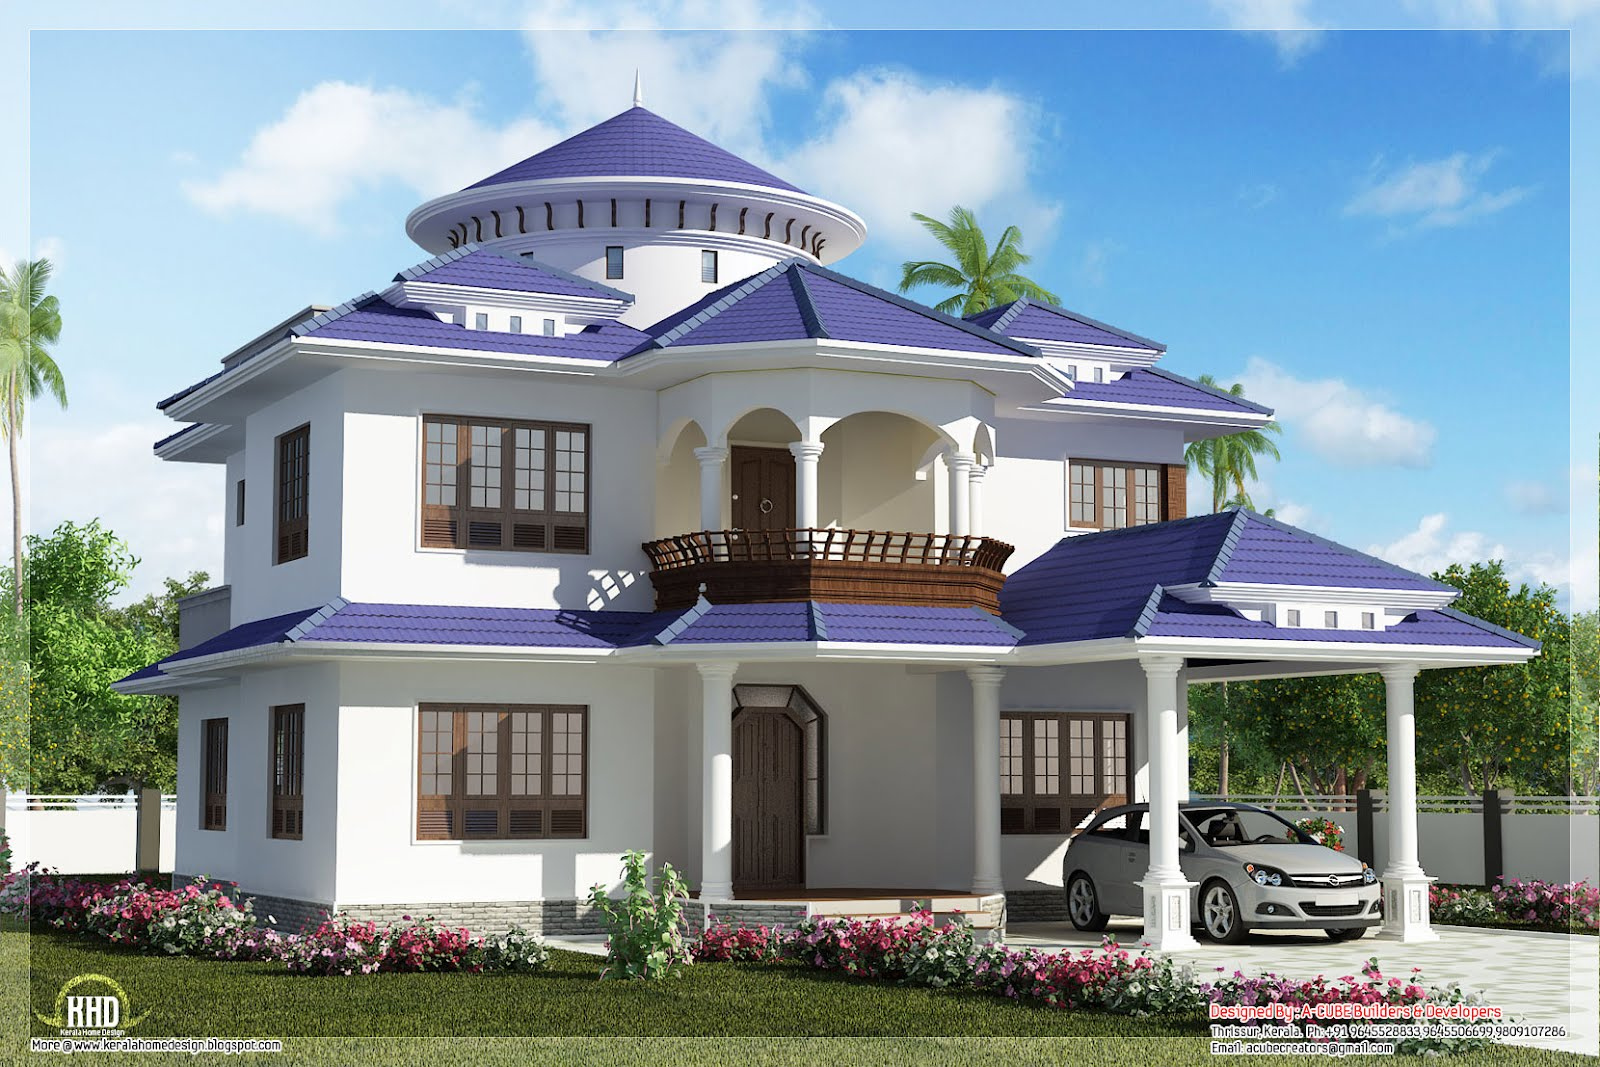 Outstanding Dreamhouse Design 1600 x 1067 · 320 kB · jpeg